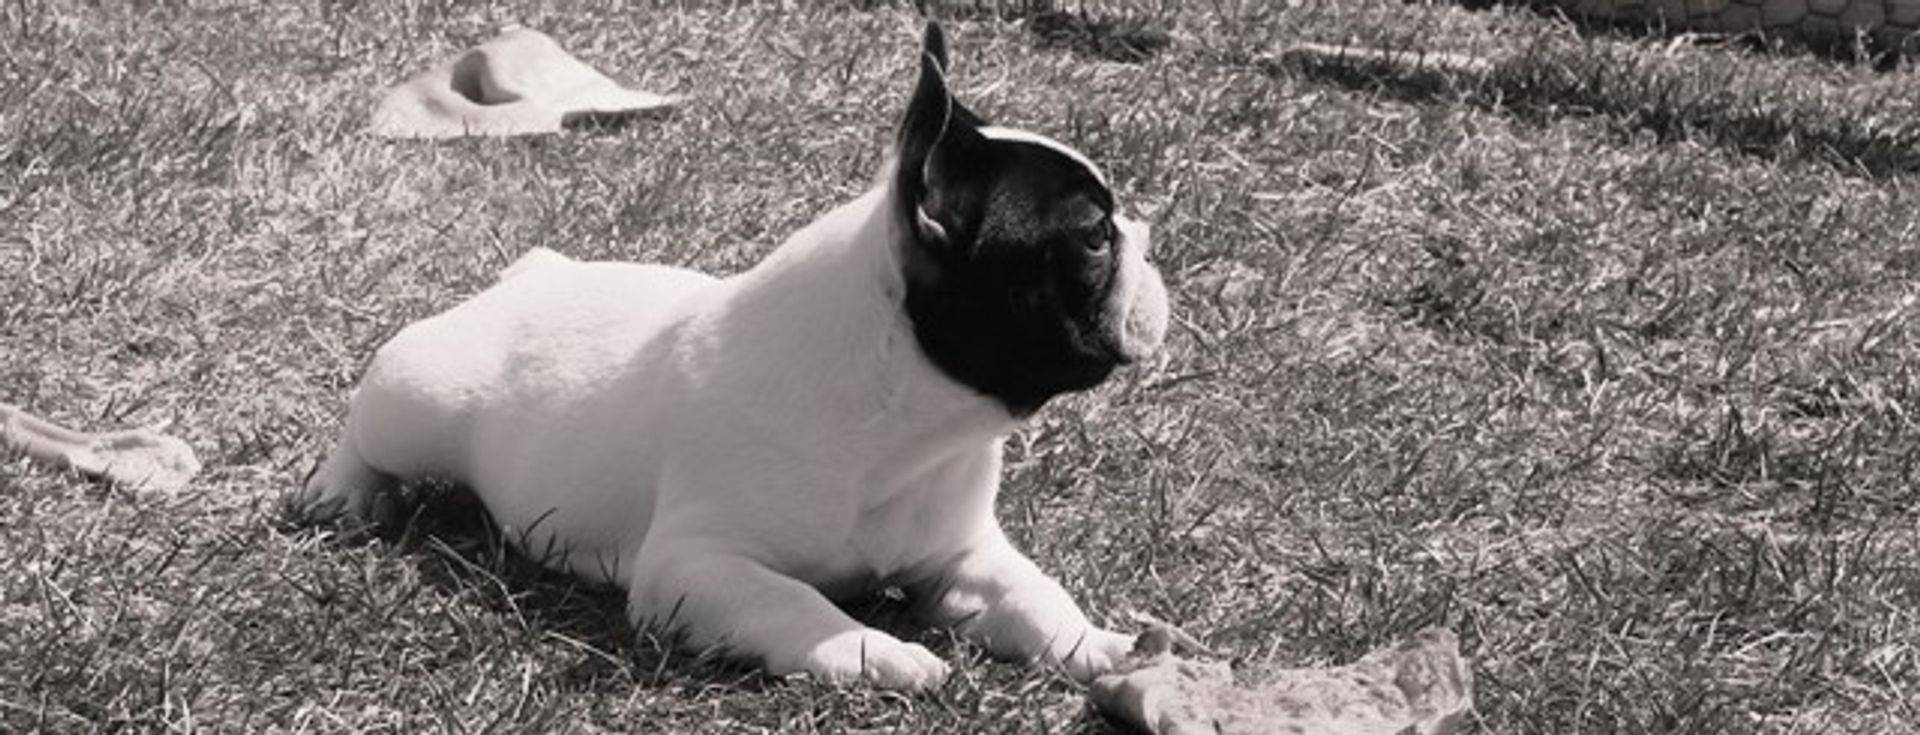 Beautiful Pied Male French Bulldog from Eazy x Solo litter,  Breeder:  Barbara McCarthy and Ingrid Gleysteen